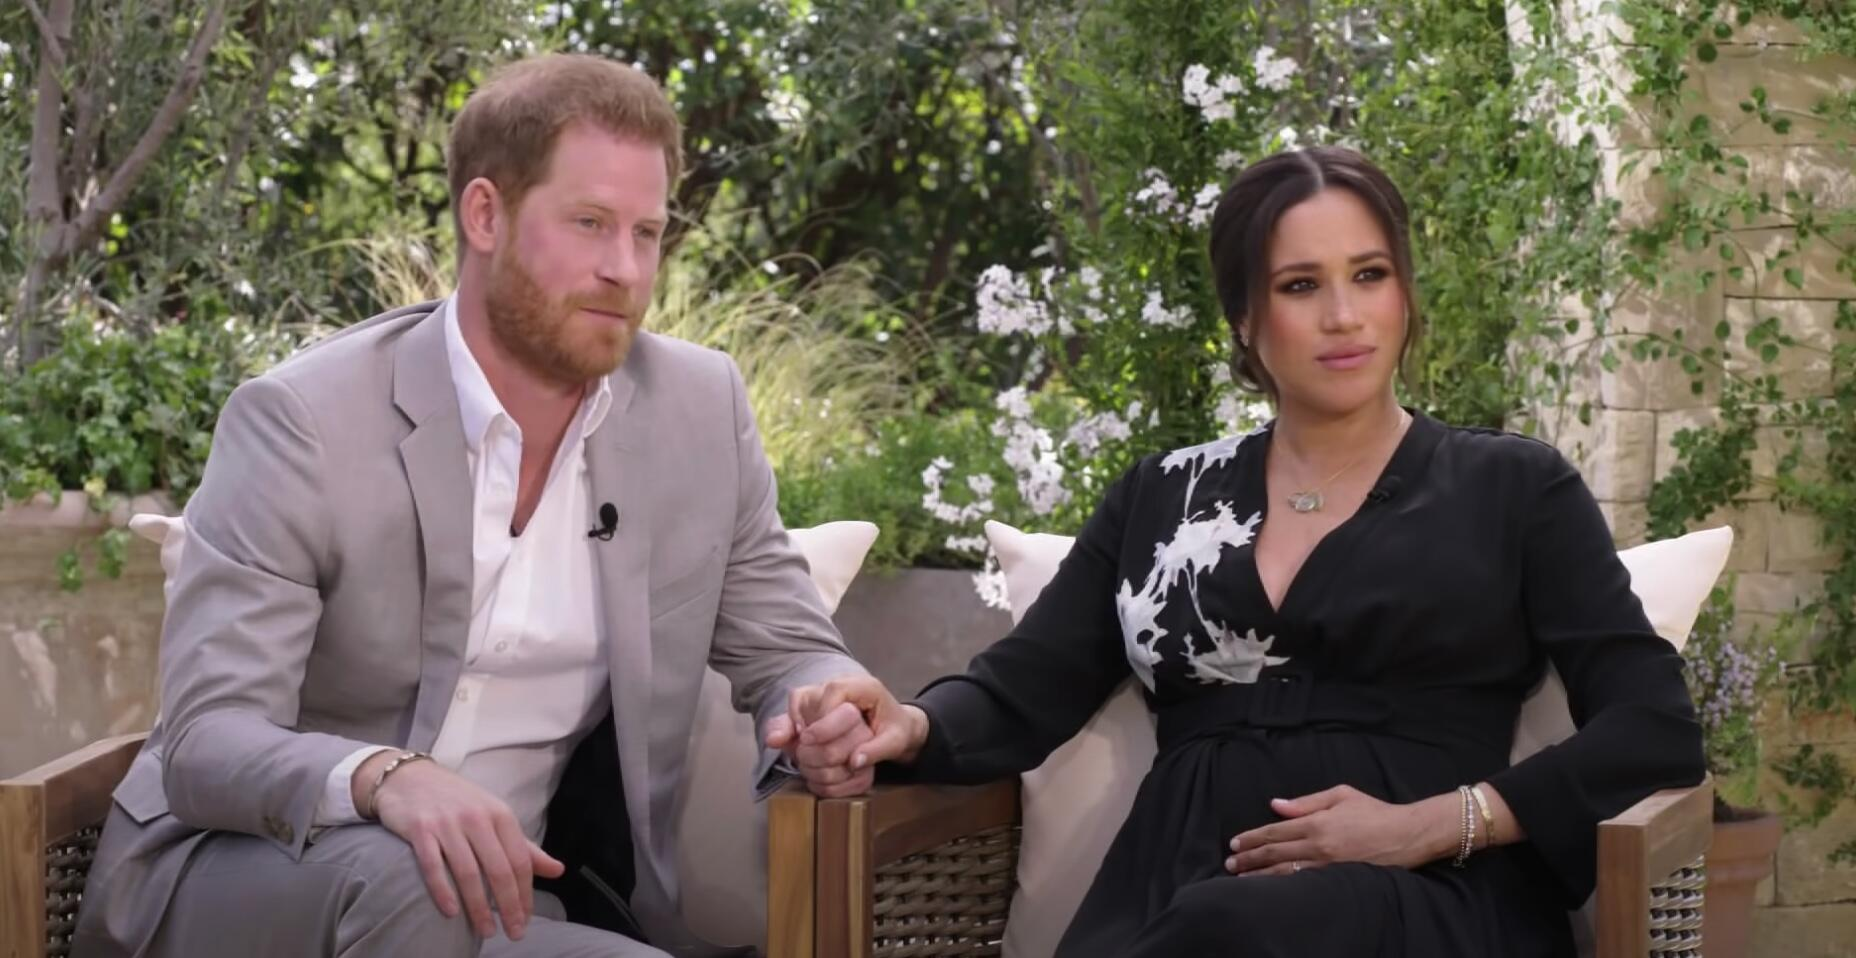 Missed Meghan and Harry's Oprah interview? How to rewatch the whole thing - CNET